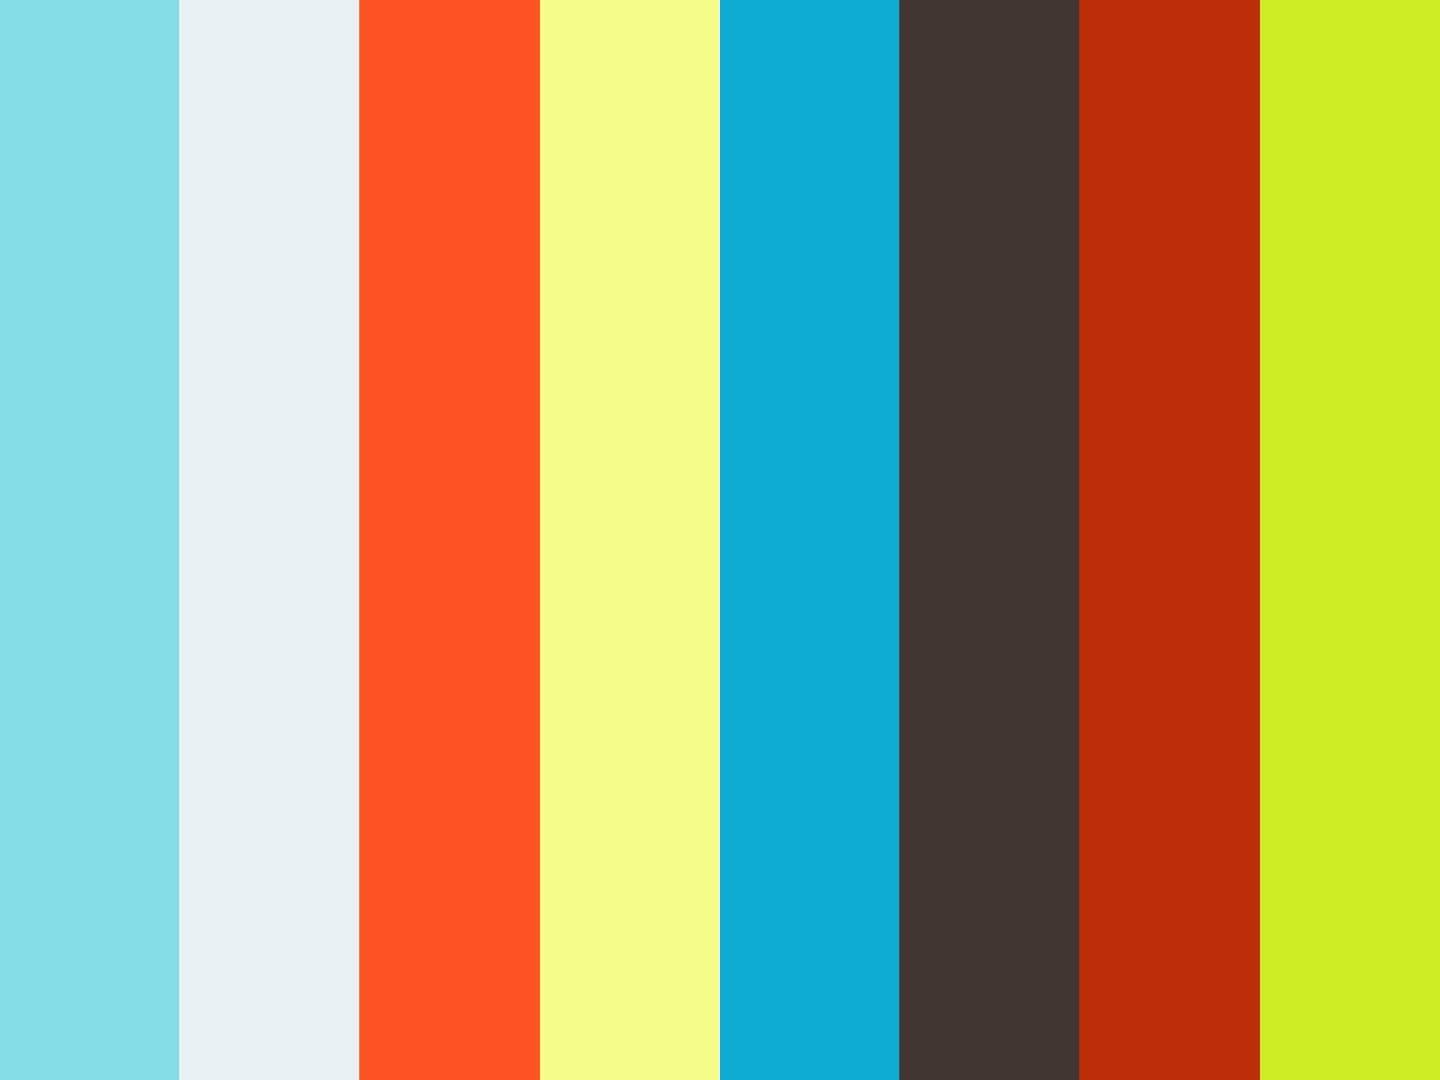 Bob marley and the wailers legend on vimeo bob marley and the wailers legend thecheapjerseys